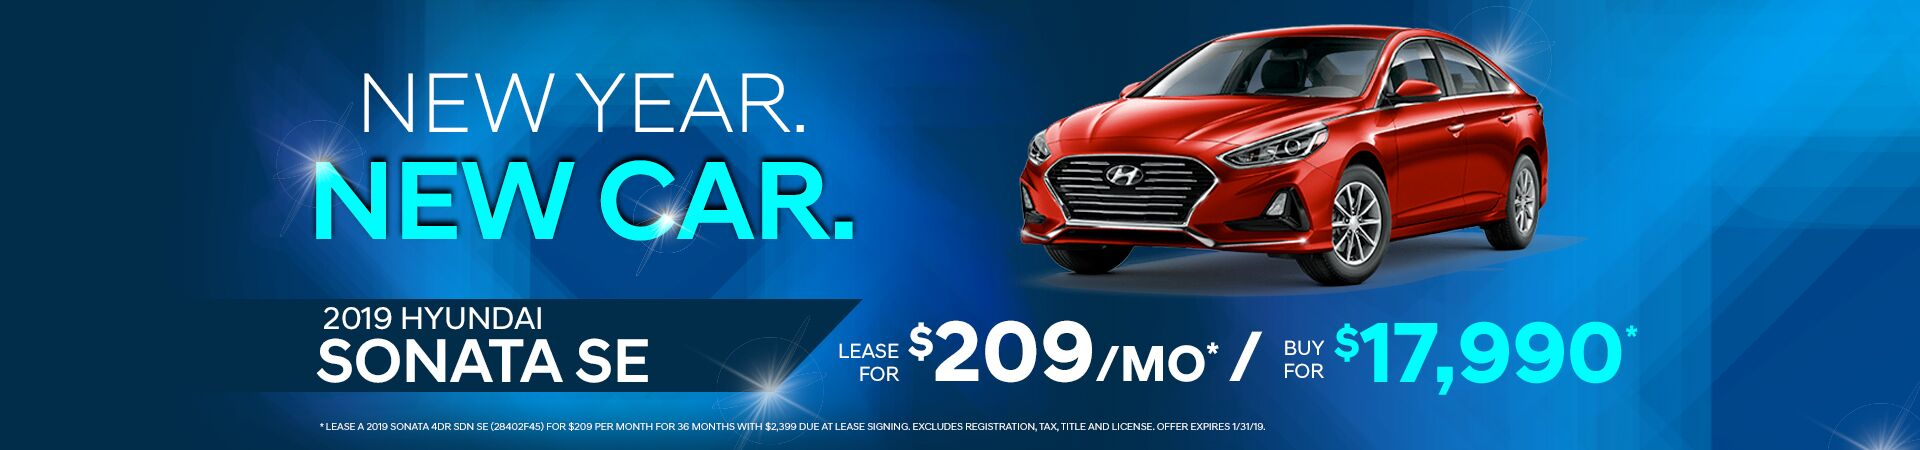 2019 Sonata Offer